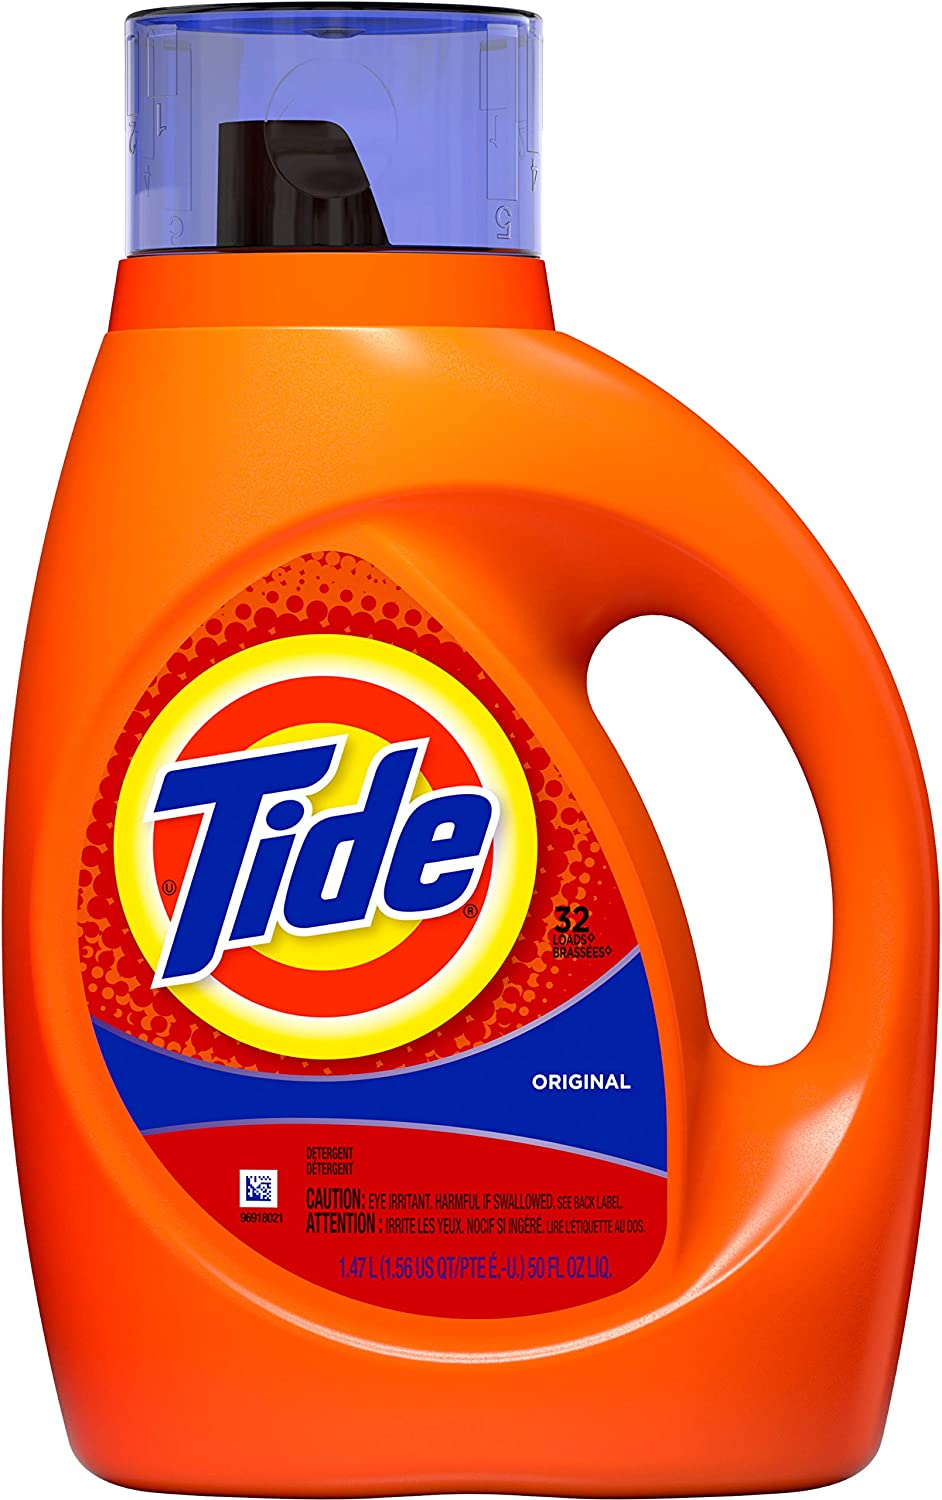 Tide Original Scent Liquid Laundry Detergent, 32 loads, 50 fl oz(Packaging May Vary)